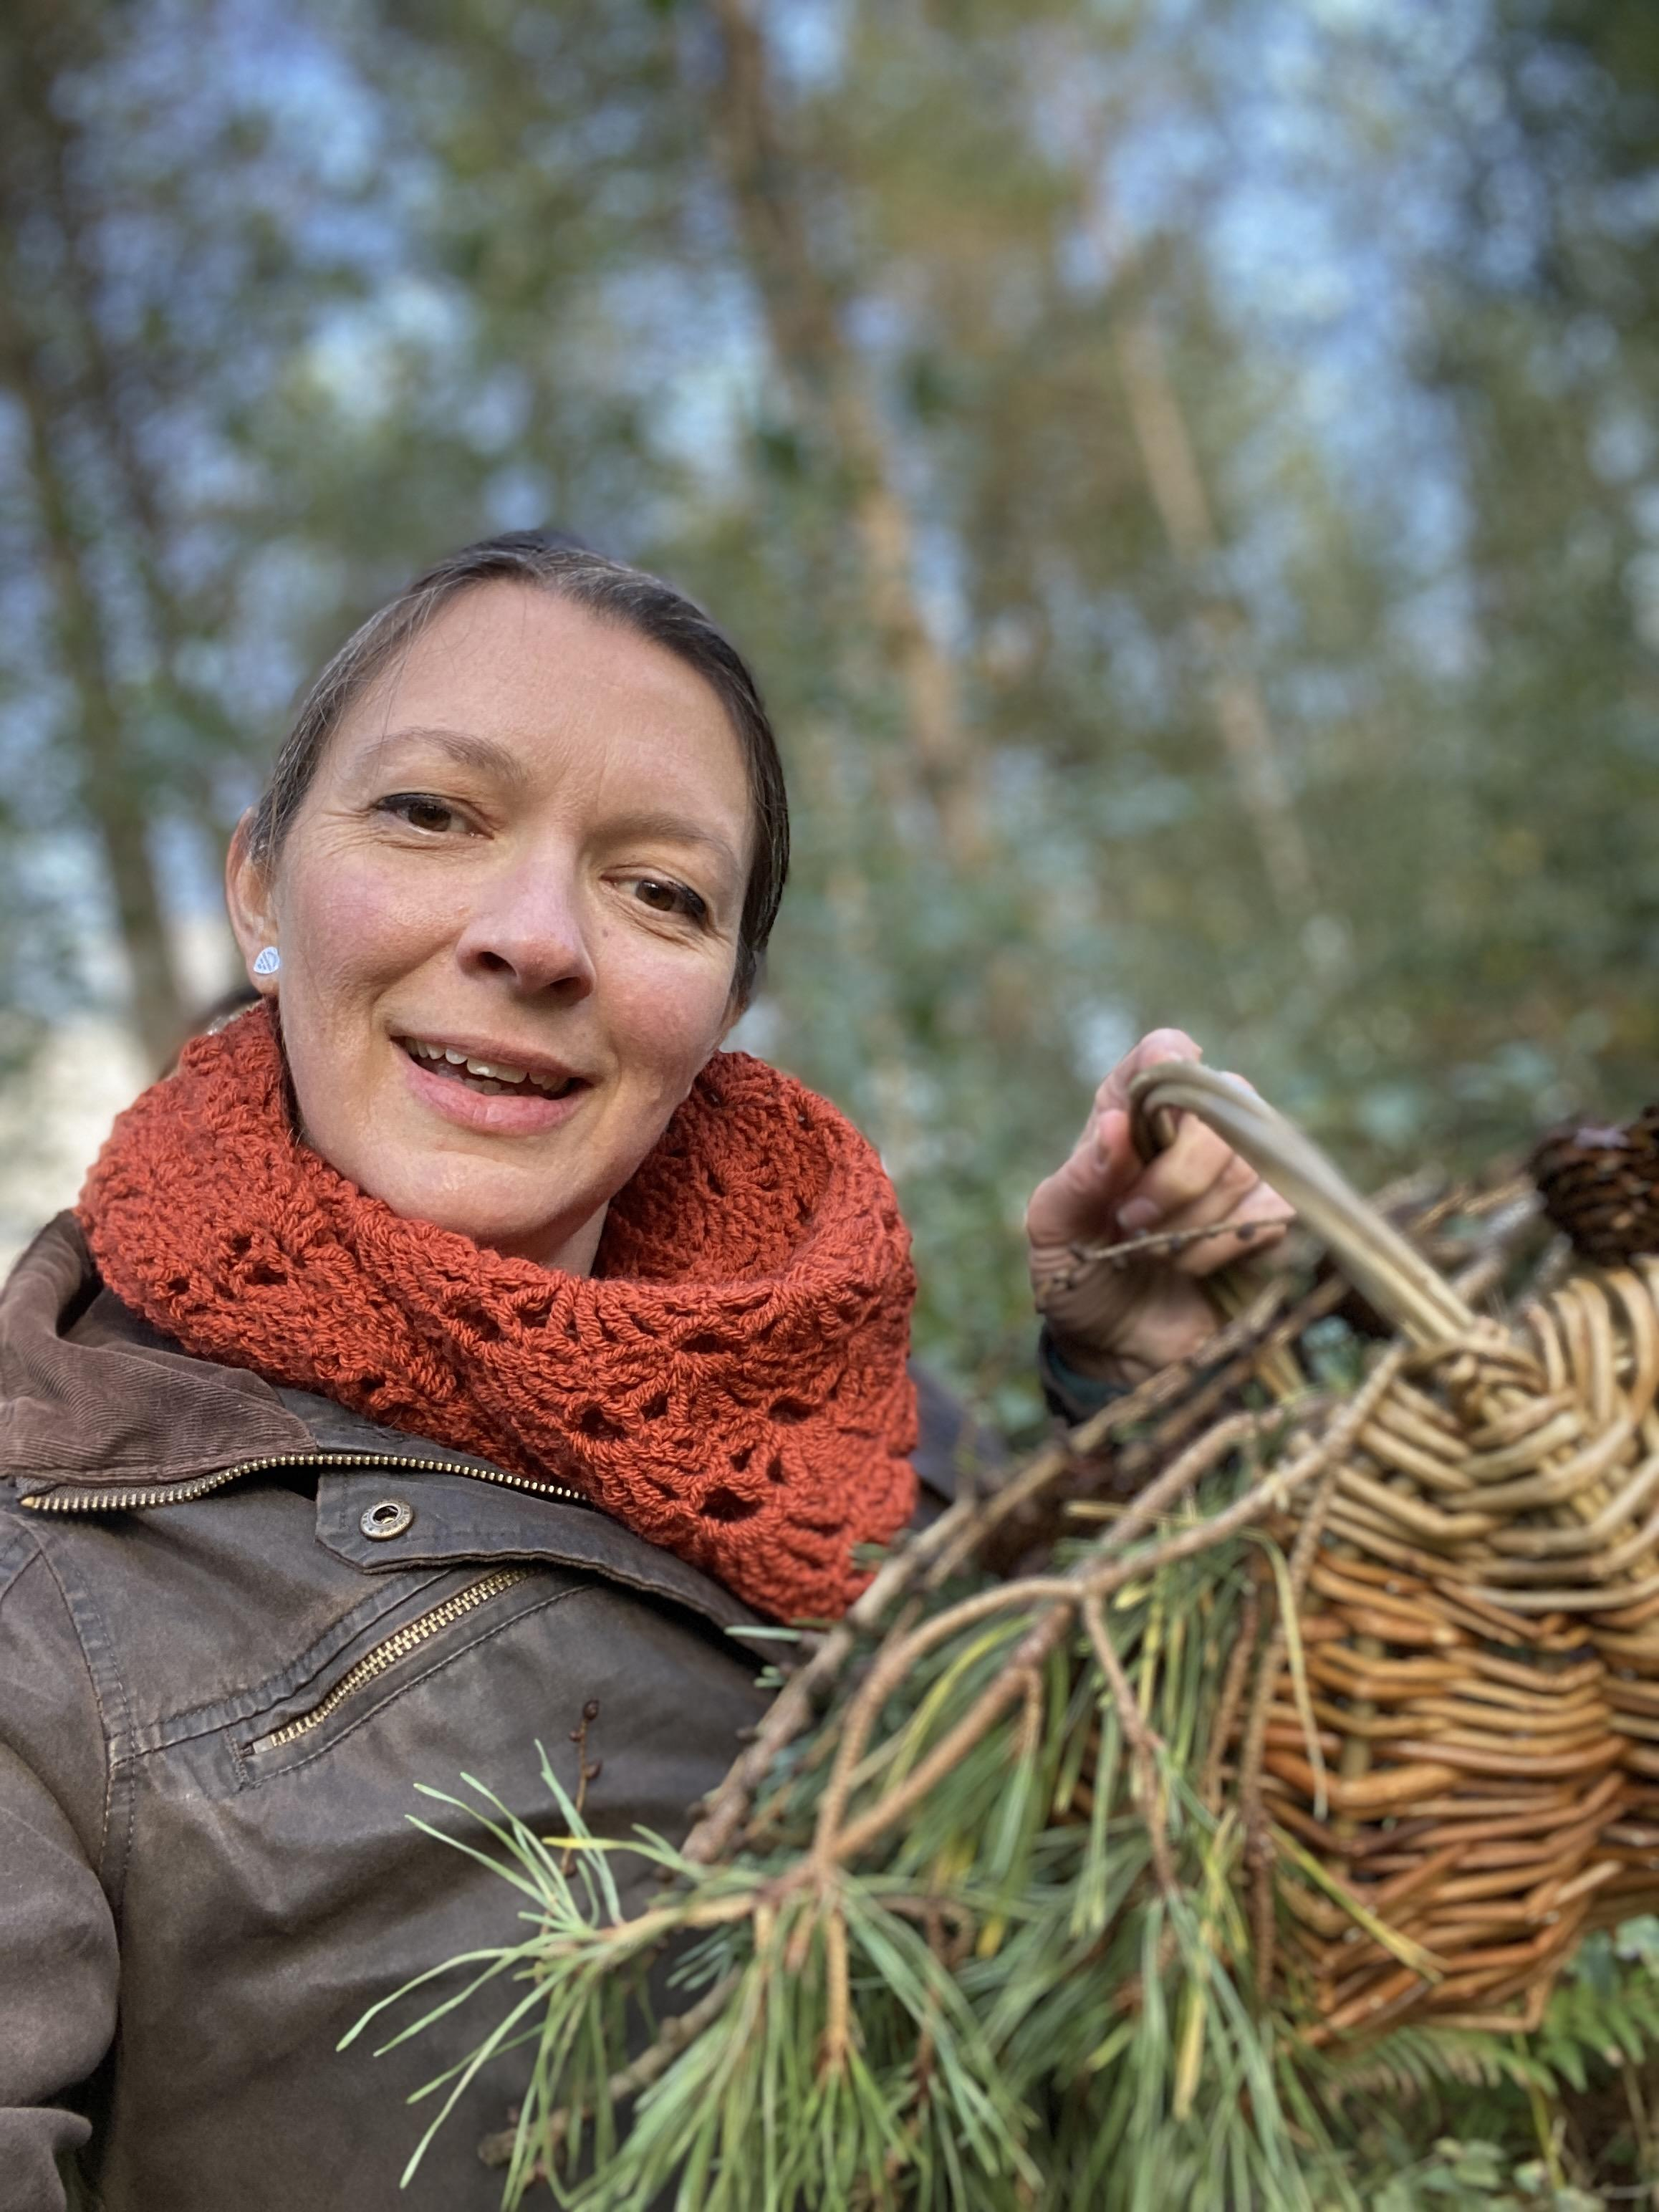 Me showing my basket with autumnal leaves, wearing the Woodbury Castle shawl